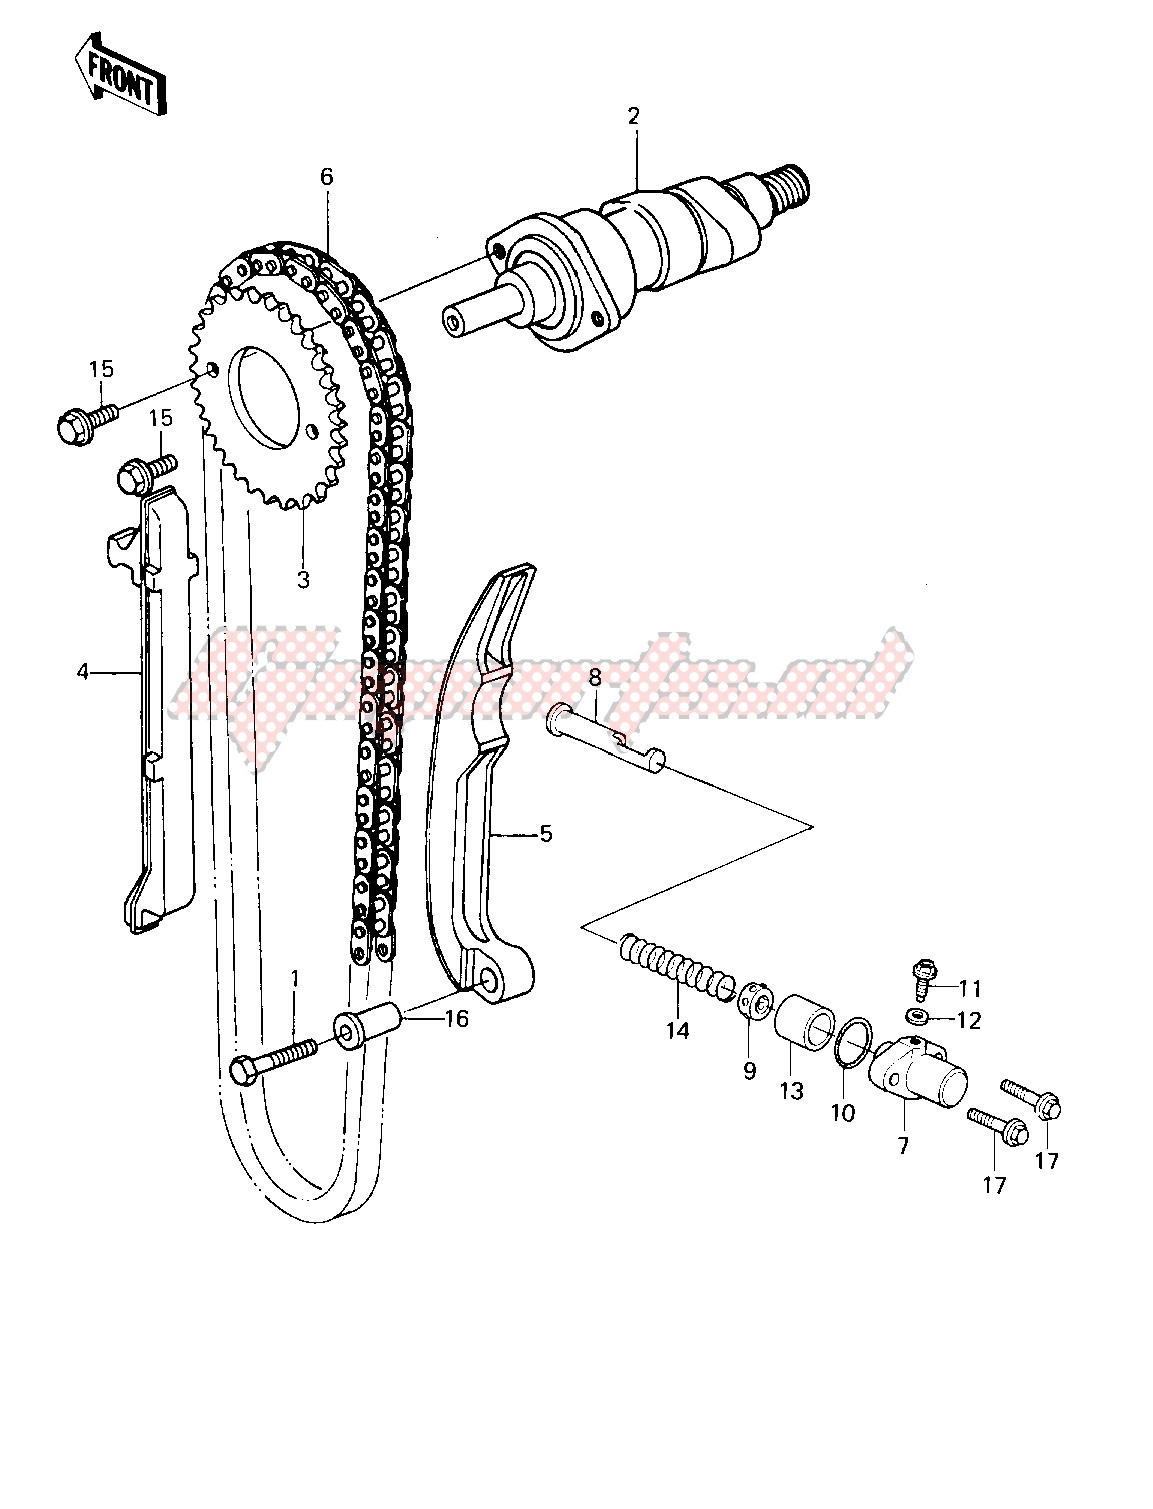 Engine-CAMSHAFT_CHAIN_TENSIONER -- 81-82 KLT200-A1_A2_A3- -